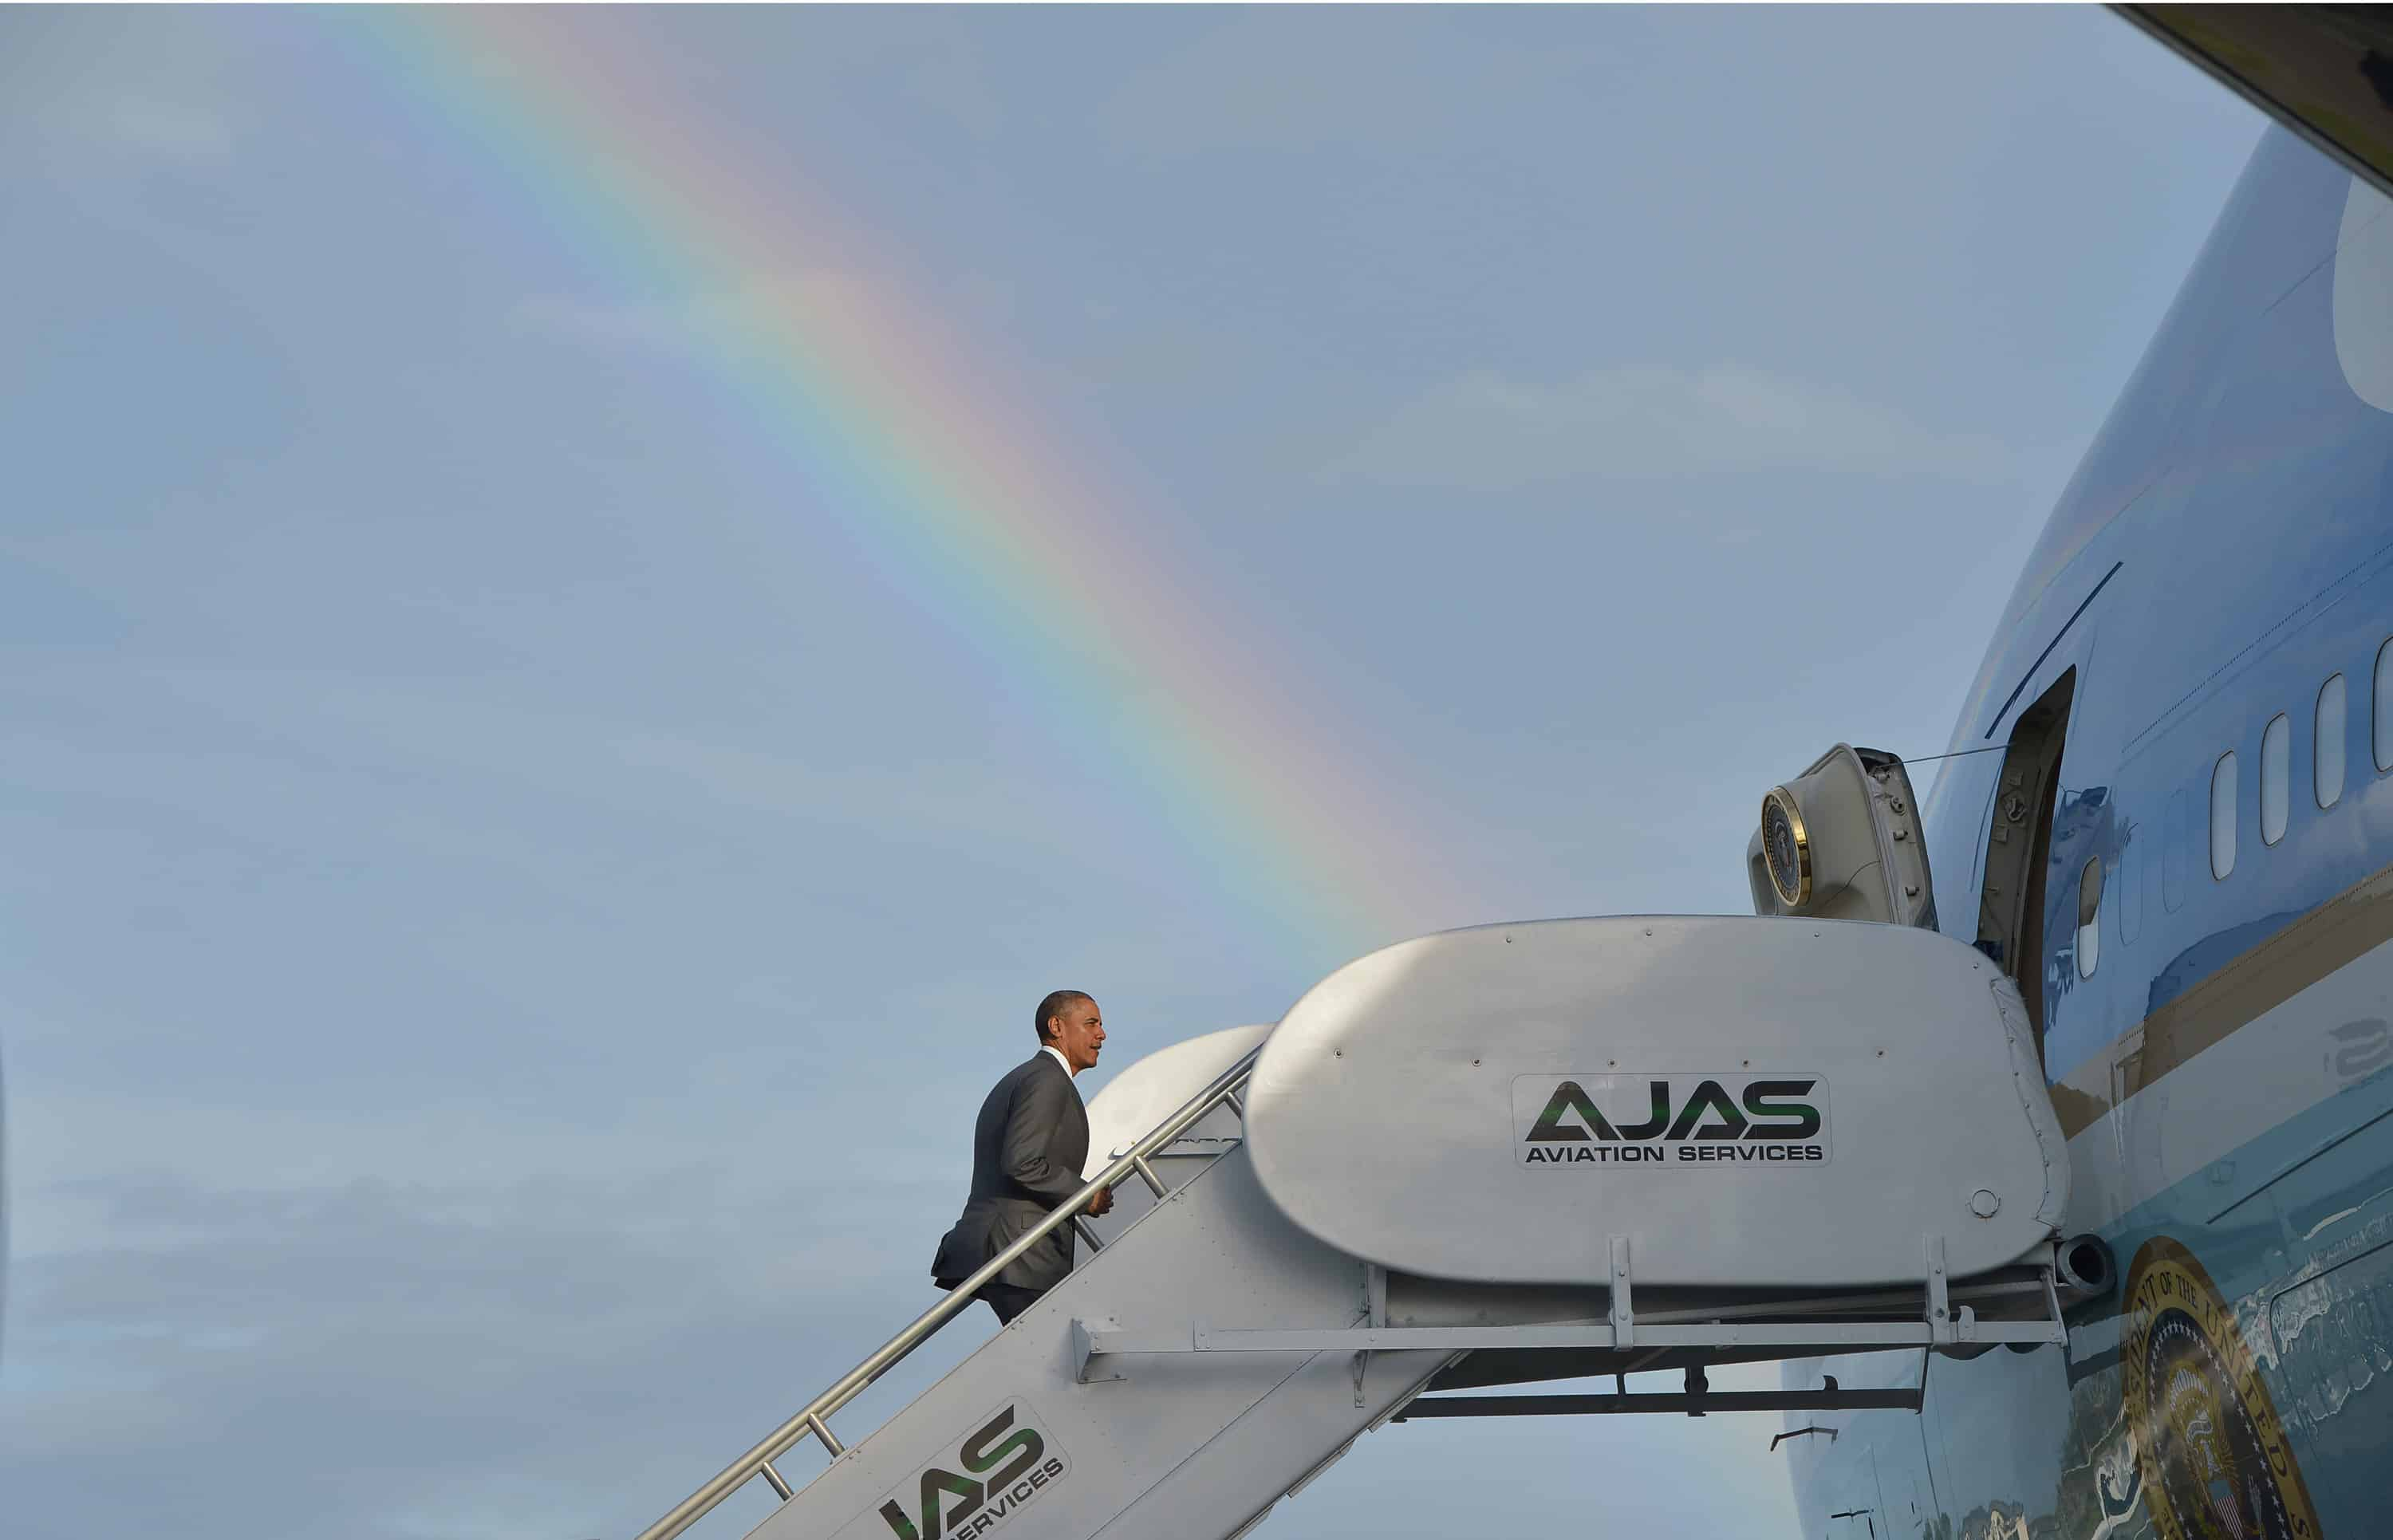 U.S. President Barack Obama boards Air Force One under a rainbow while departing from Kingston, Jamaica.